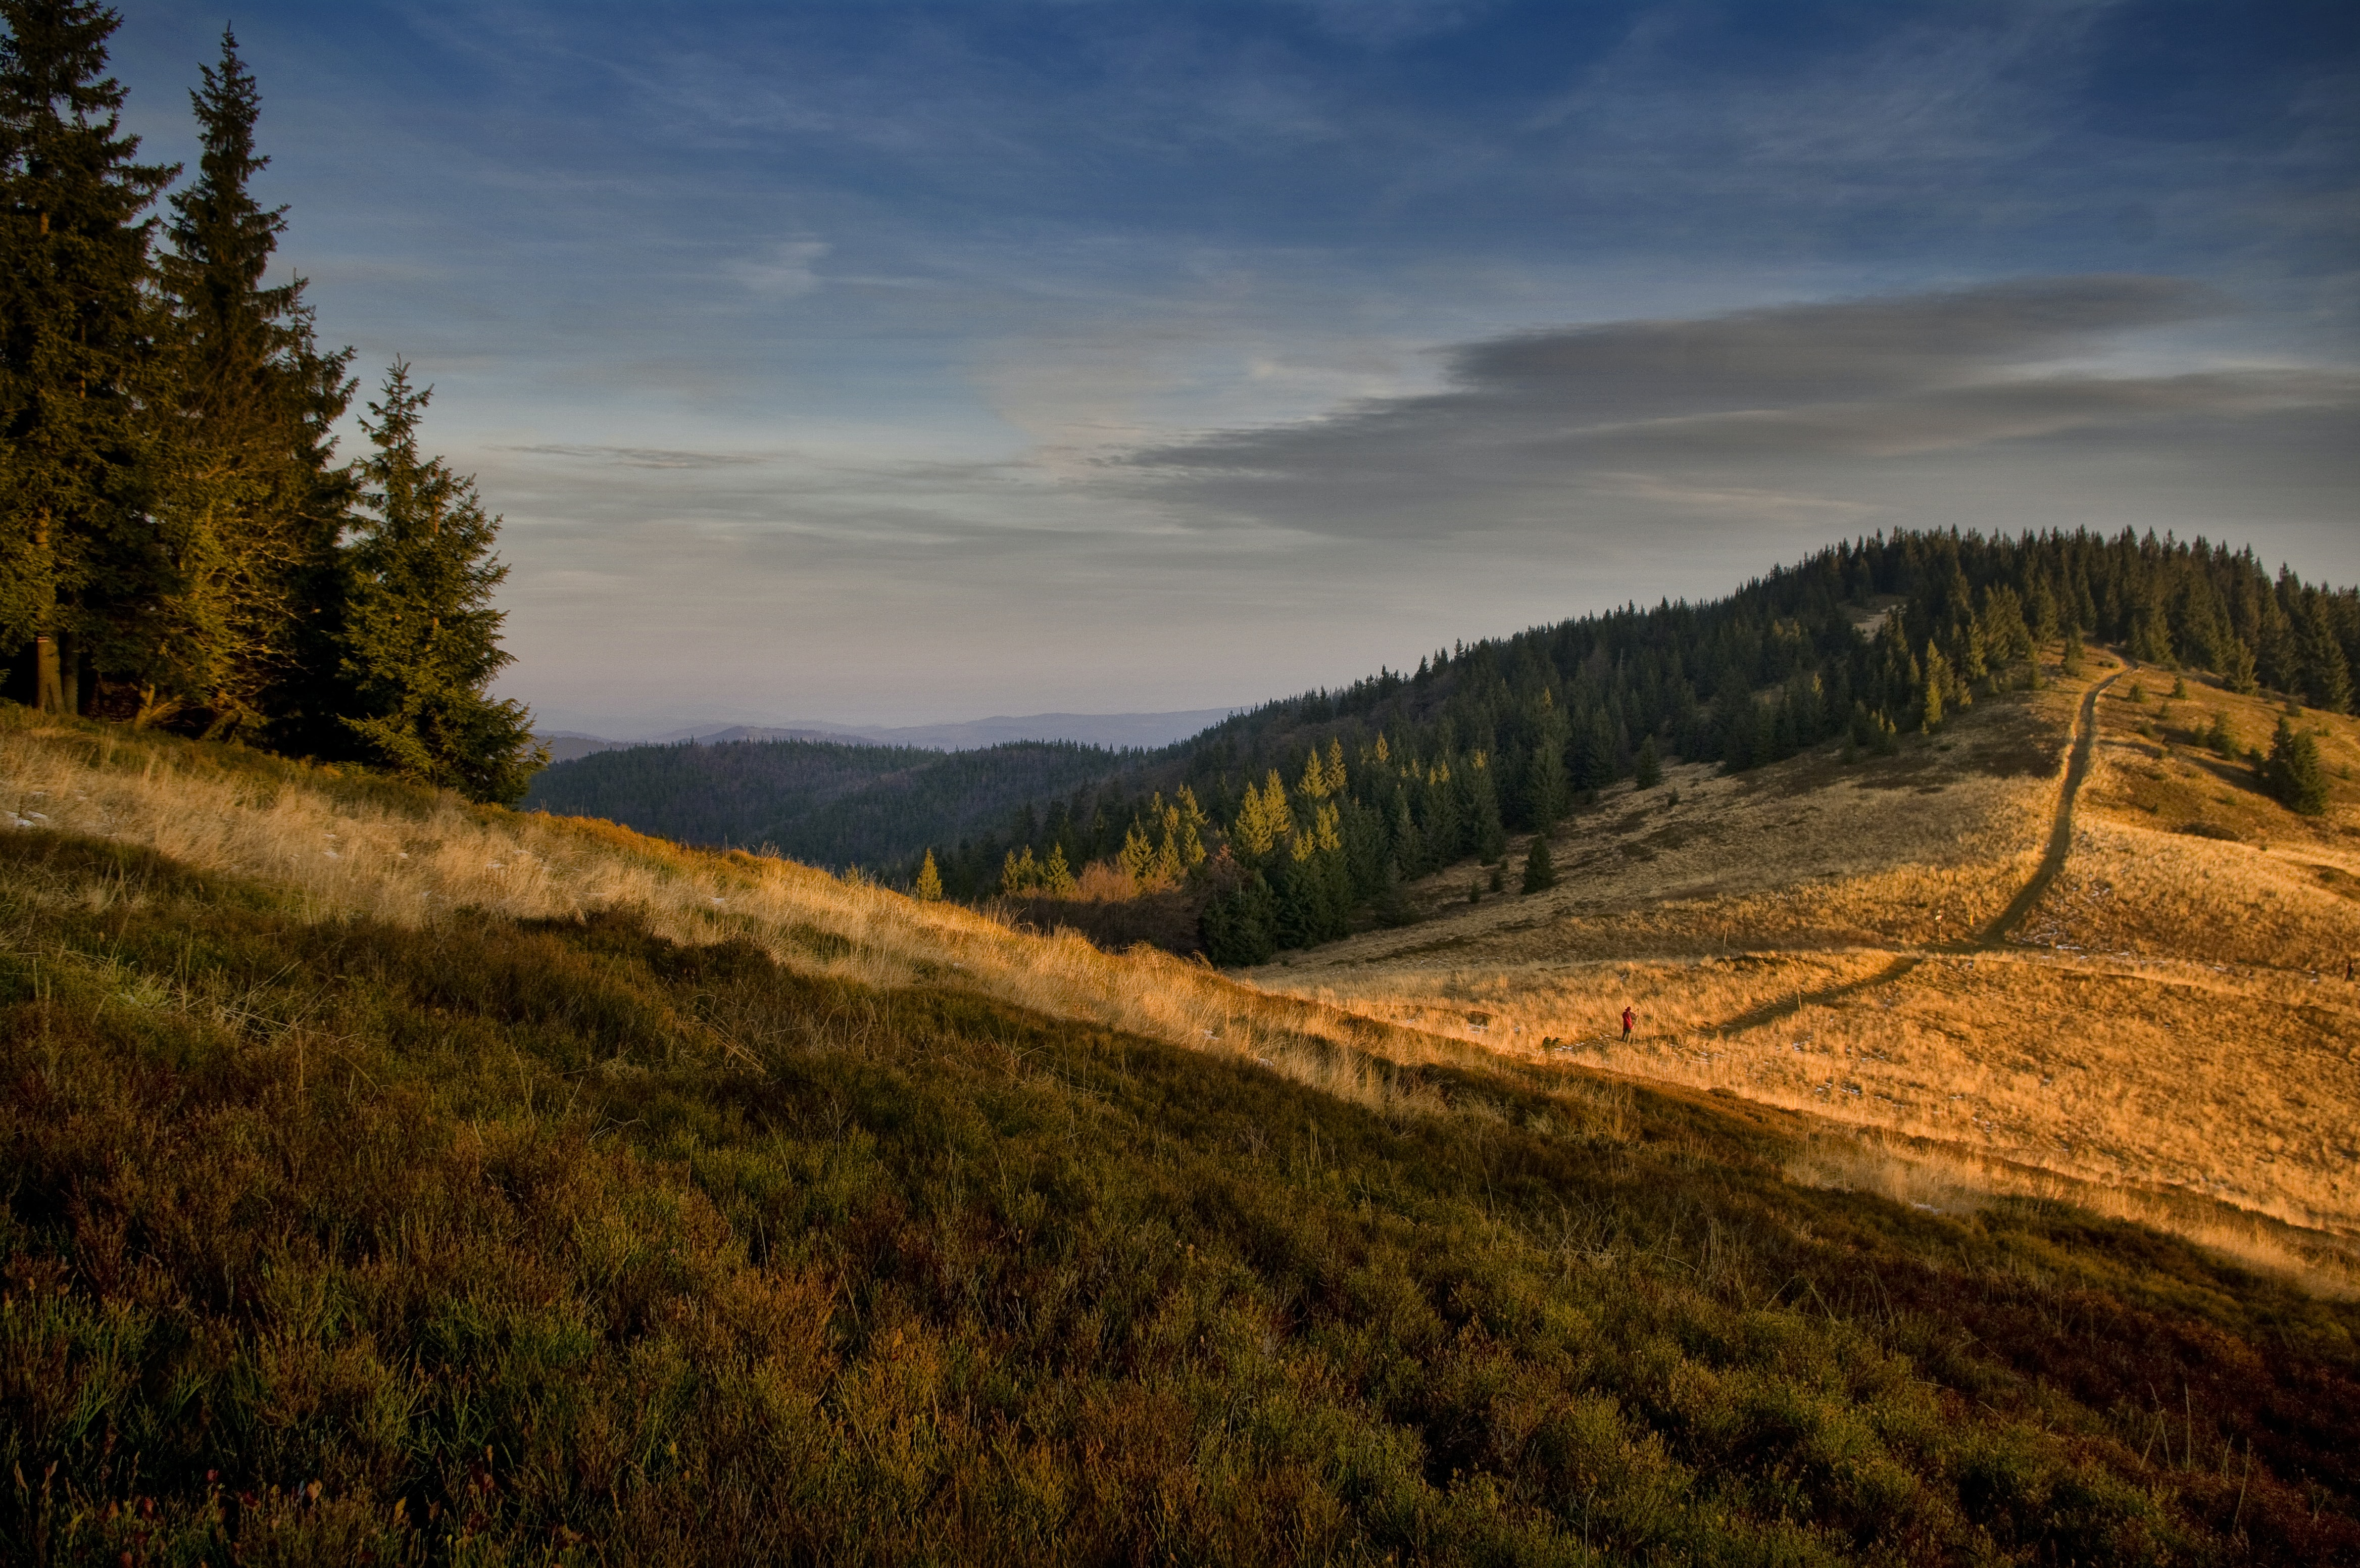 The golden hour sunset over a mountain with trees and open grass in Bacówka PTTK na Rycerzowej.